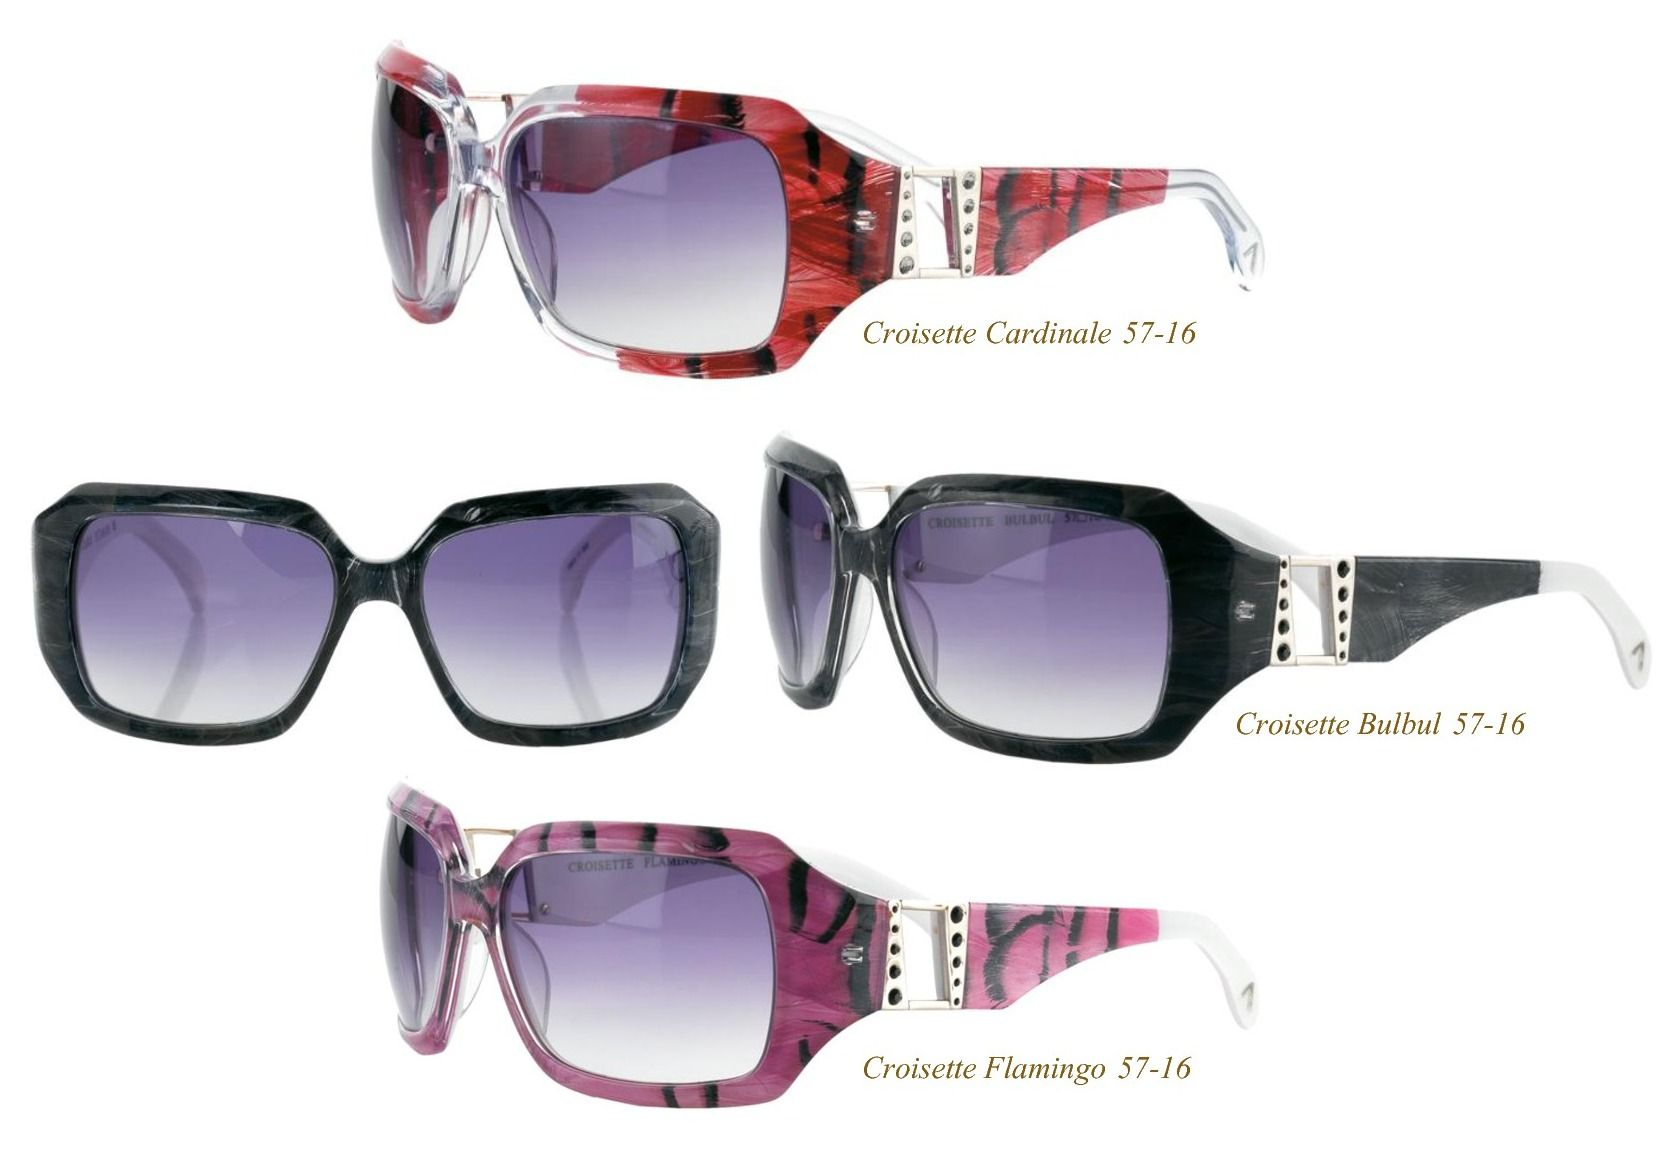 on sale ete croisettes 201 t 233 eyewear with feathers